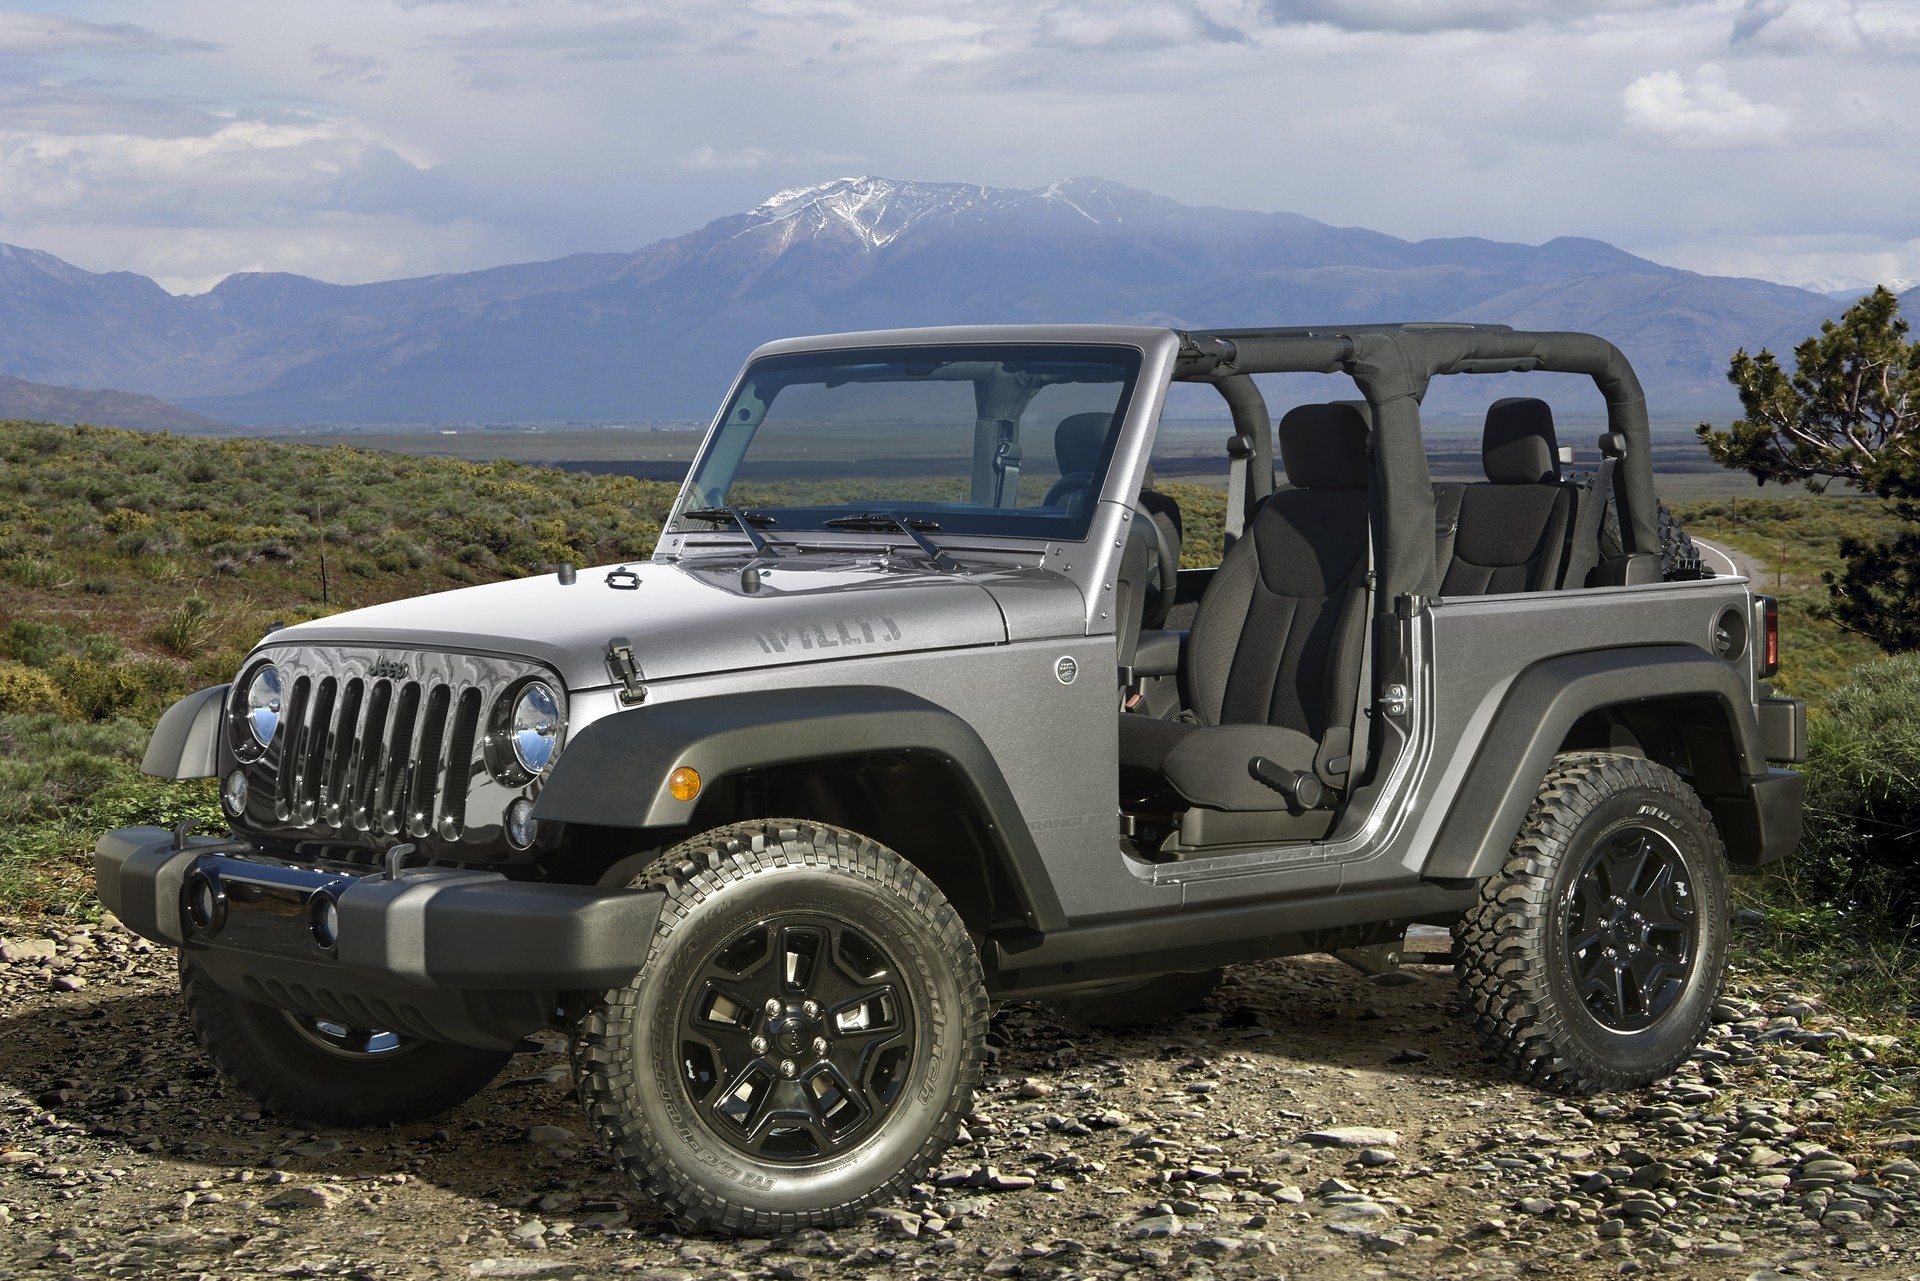 2007 to Present Jeep Wrangler. Gross Weight